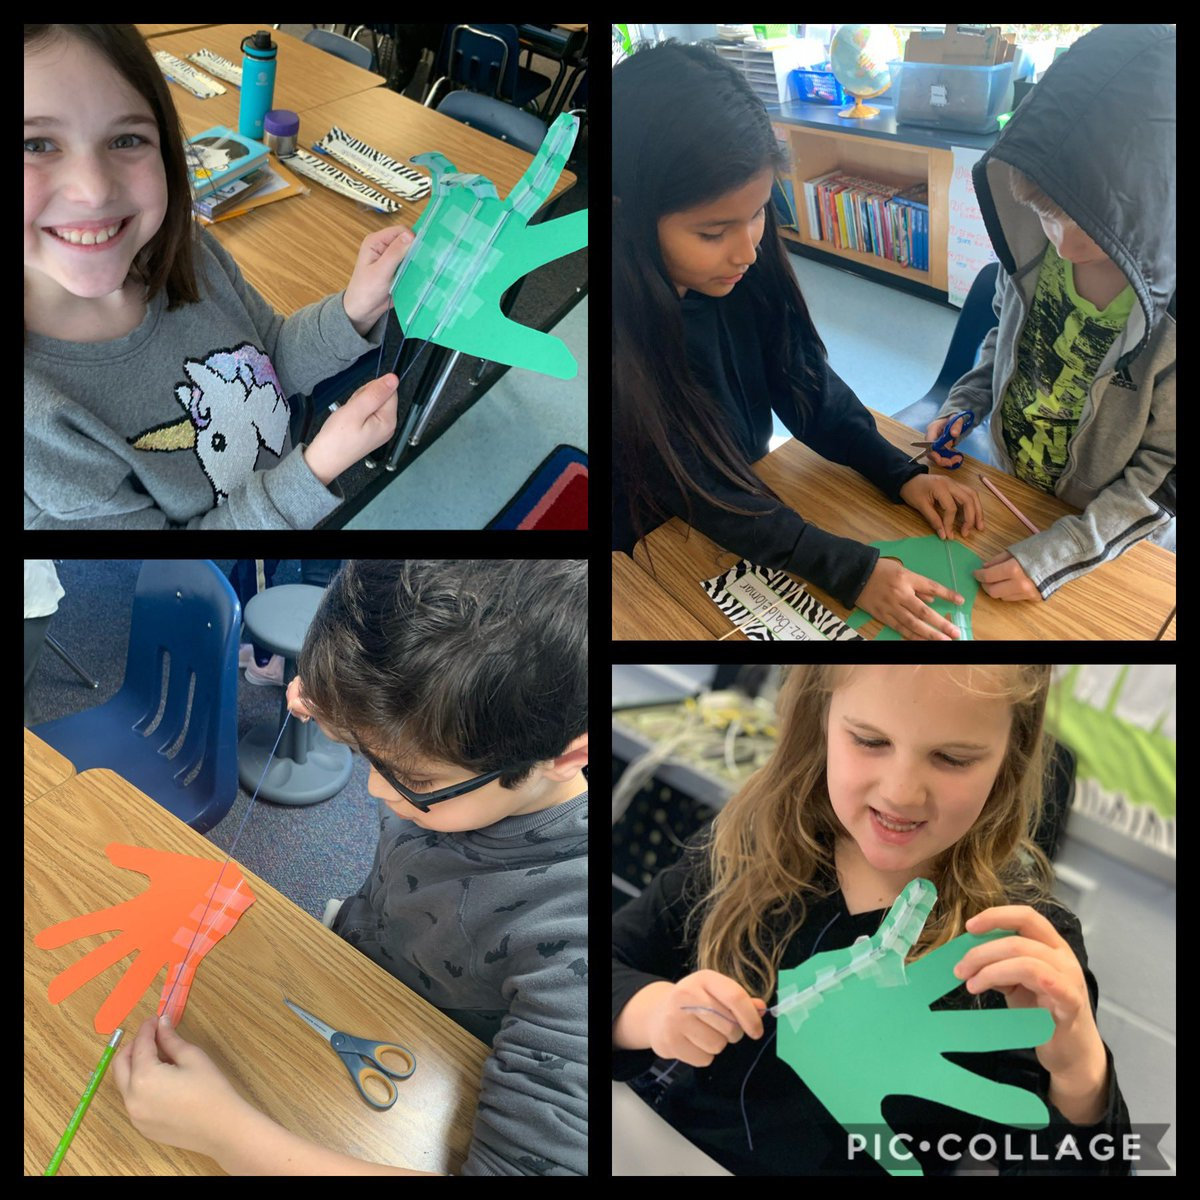 First we learned about the skeletal system. Then we learned about the muscular system. And finally - we learned how these systems work together!!! <a target='_blank' href='http://twitter.com/CampbellAPS'>@CampbellAPS</a> <a target='_blank' href='https://t.co/PMJtAmJ0yV'>https://t.co/PMJtAmJ0yV</a>